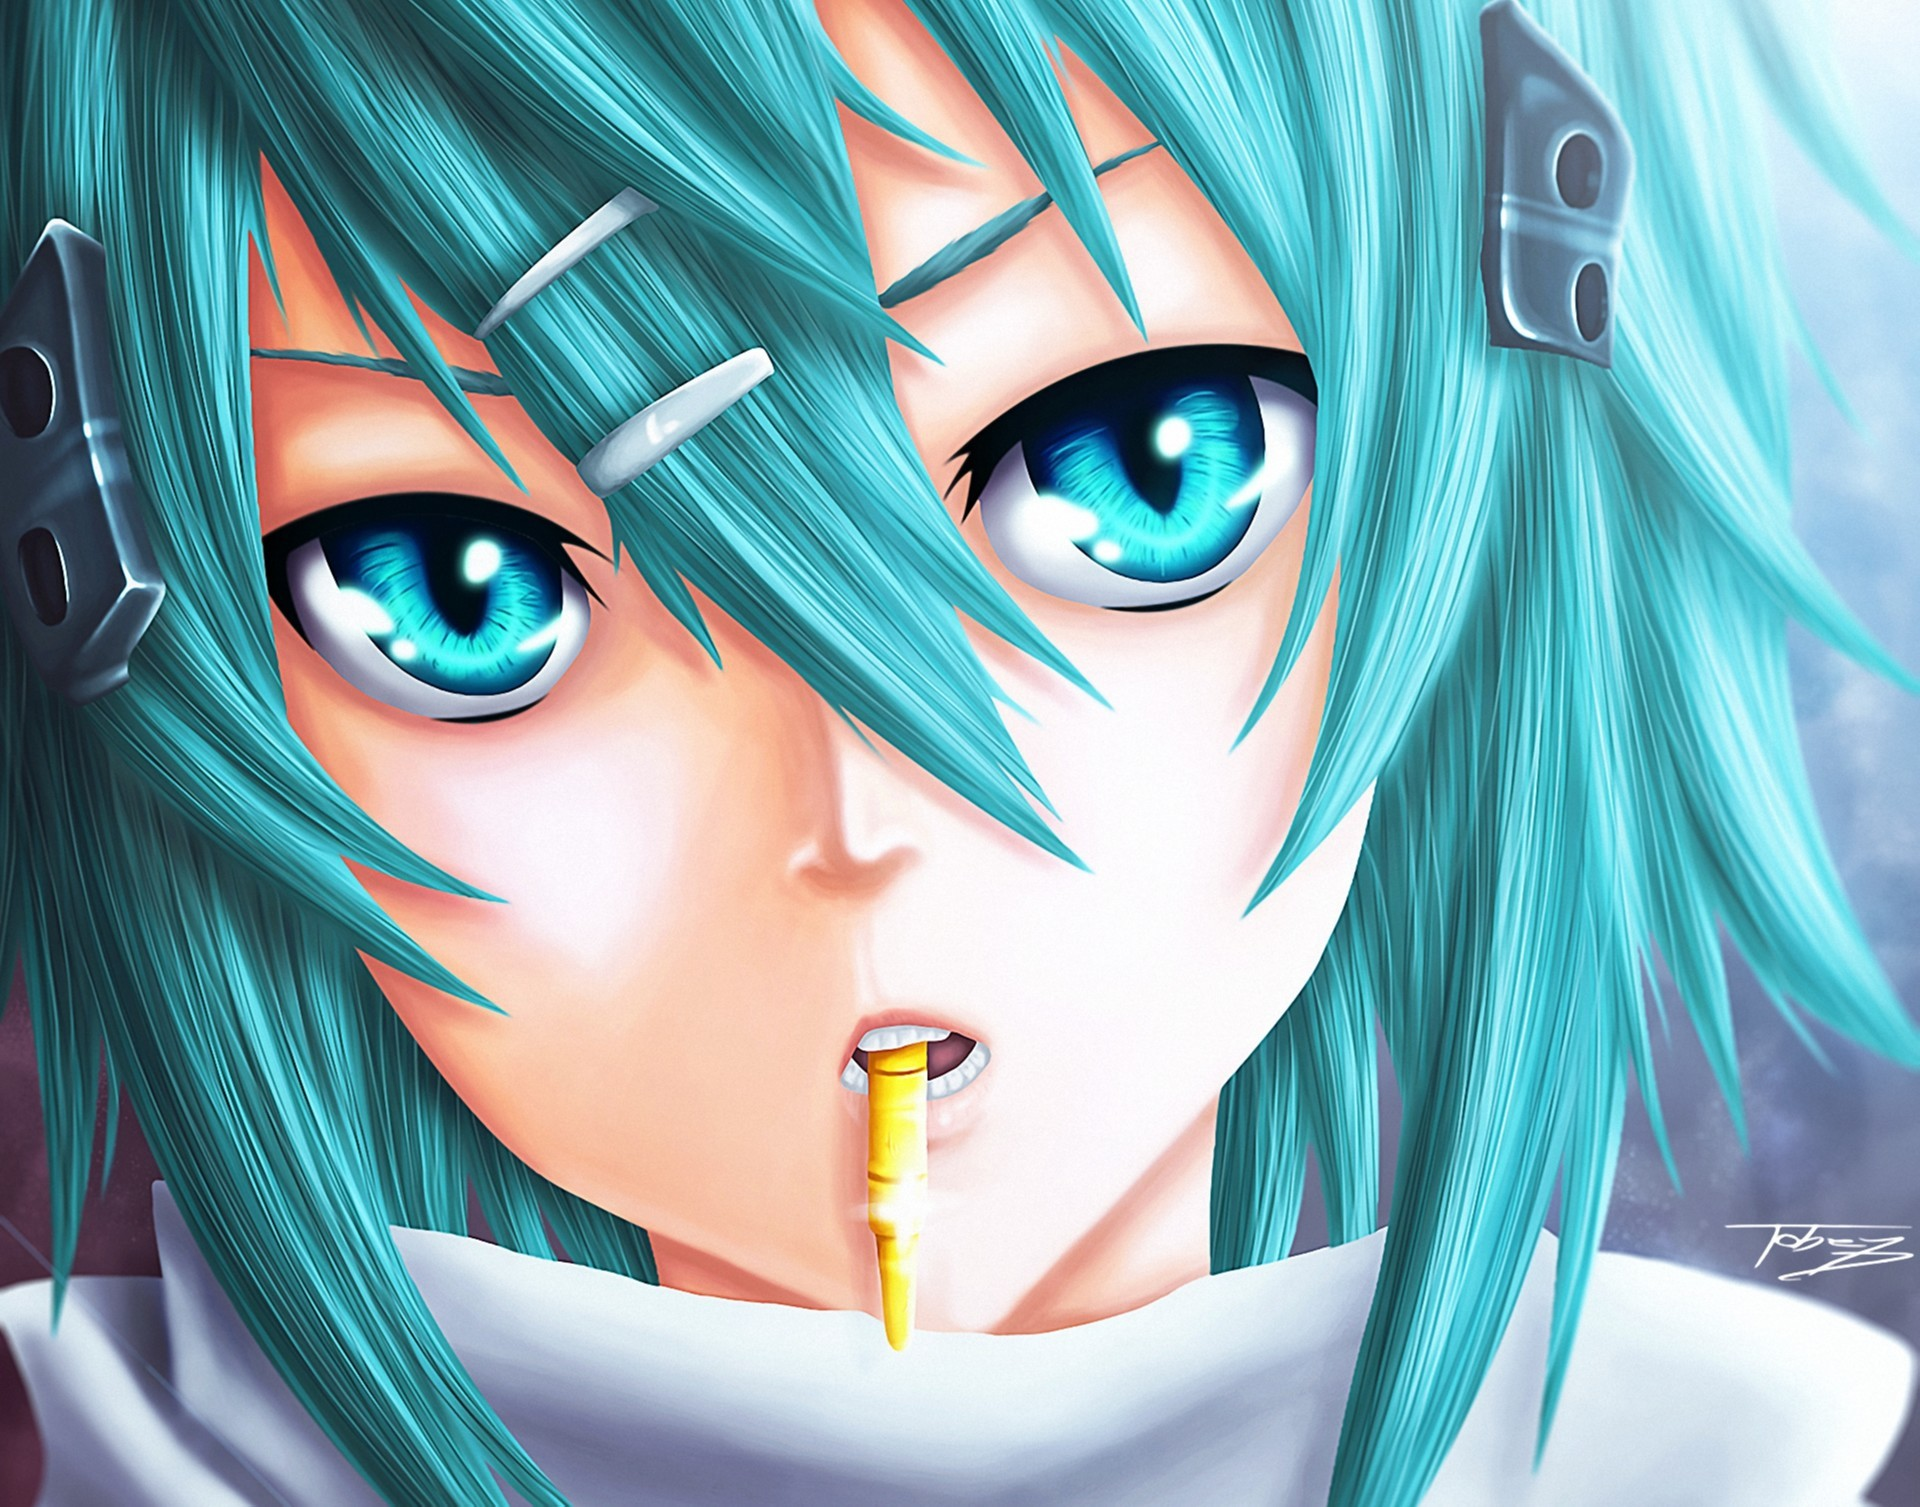 Sinon HD Anime 4k Wallpapers Images Backgrounds Photos And Pictures